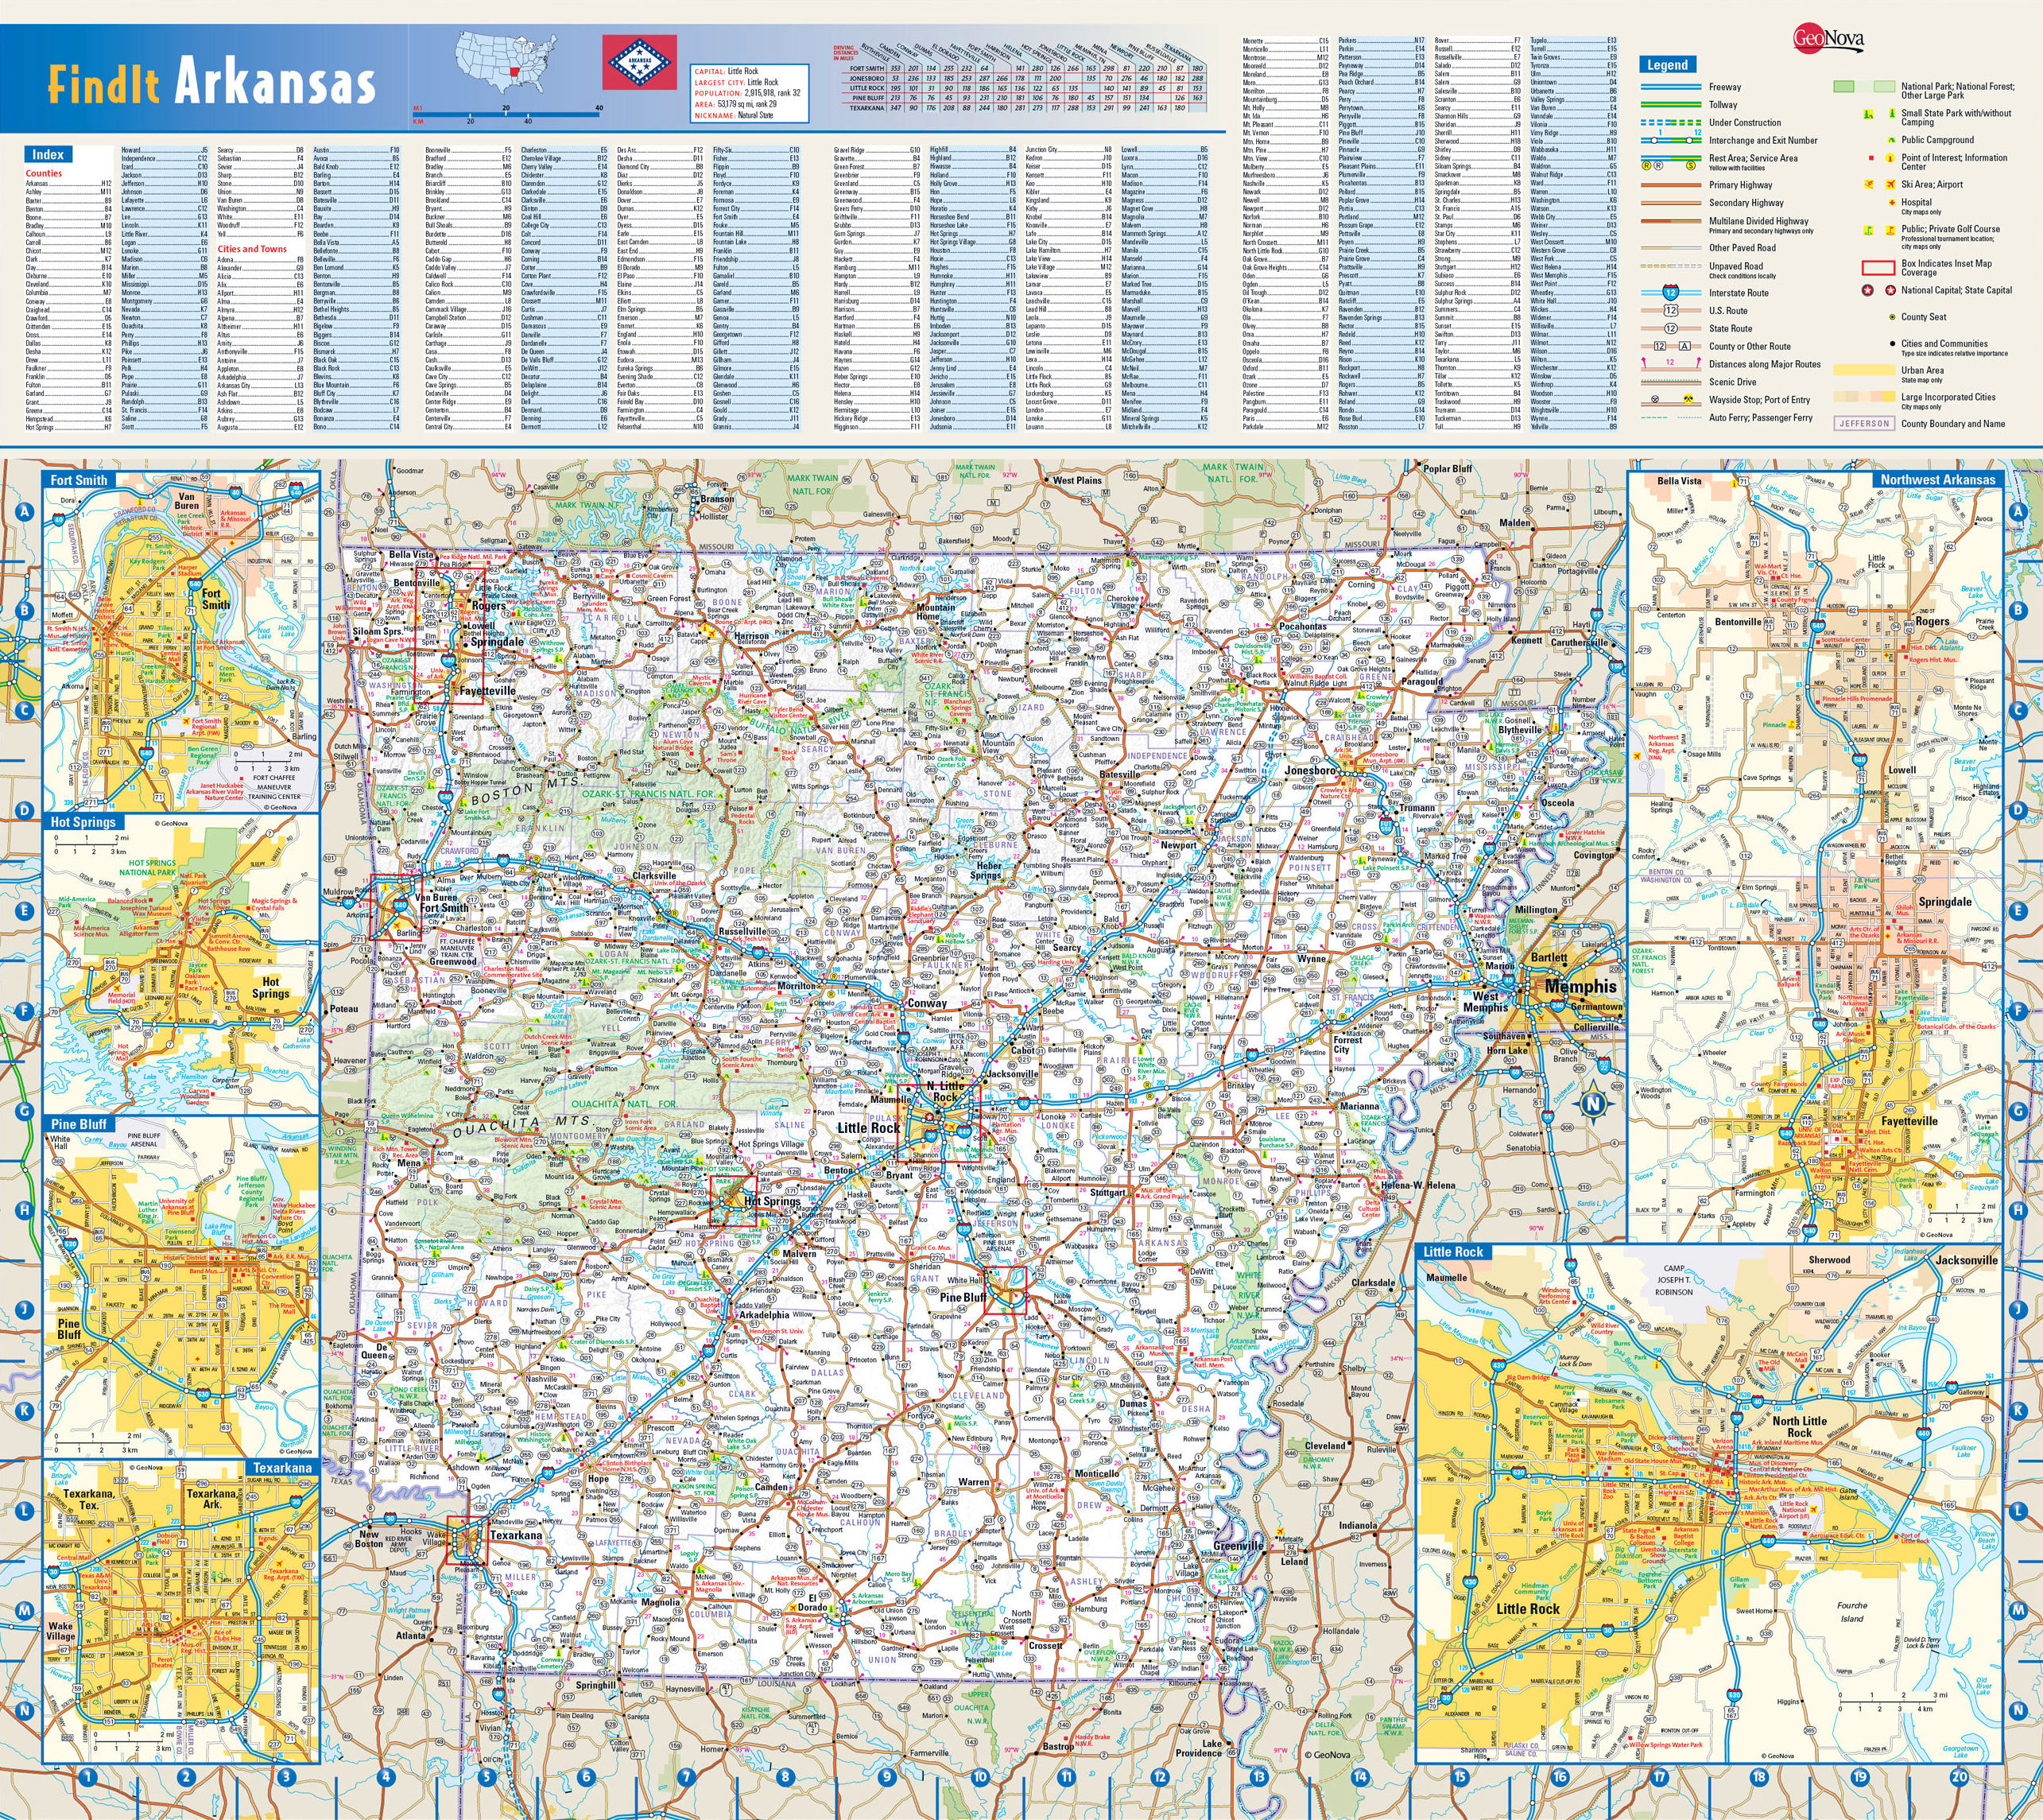 Detailed roads and highways map of Arkansas state. Arkansas state ...